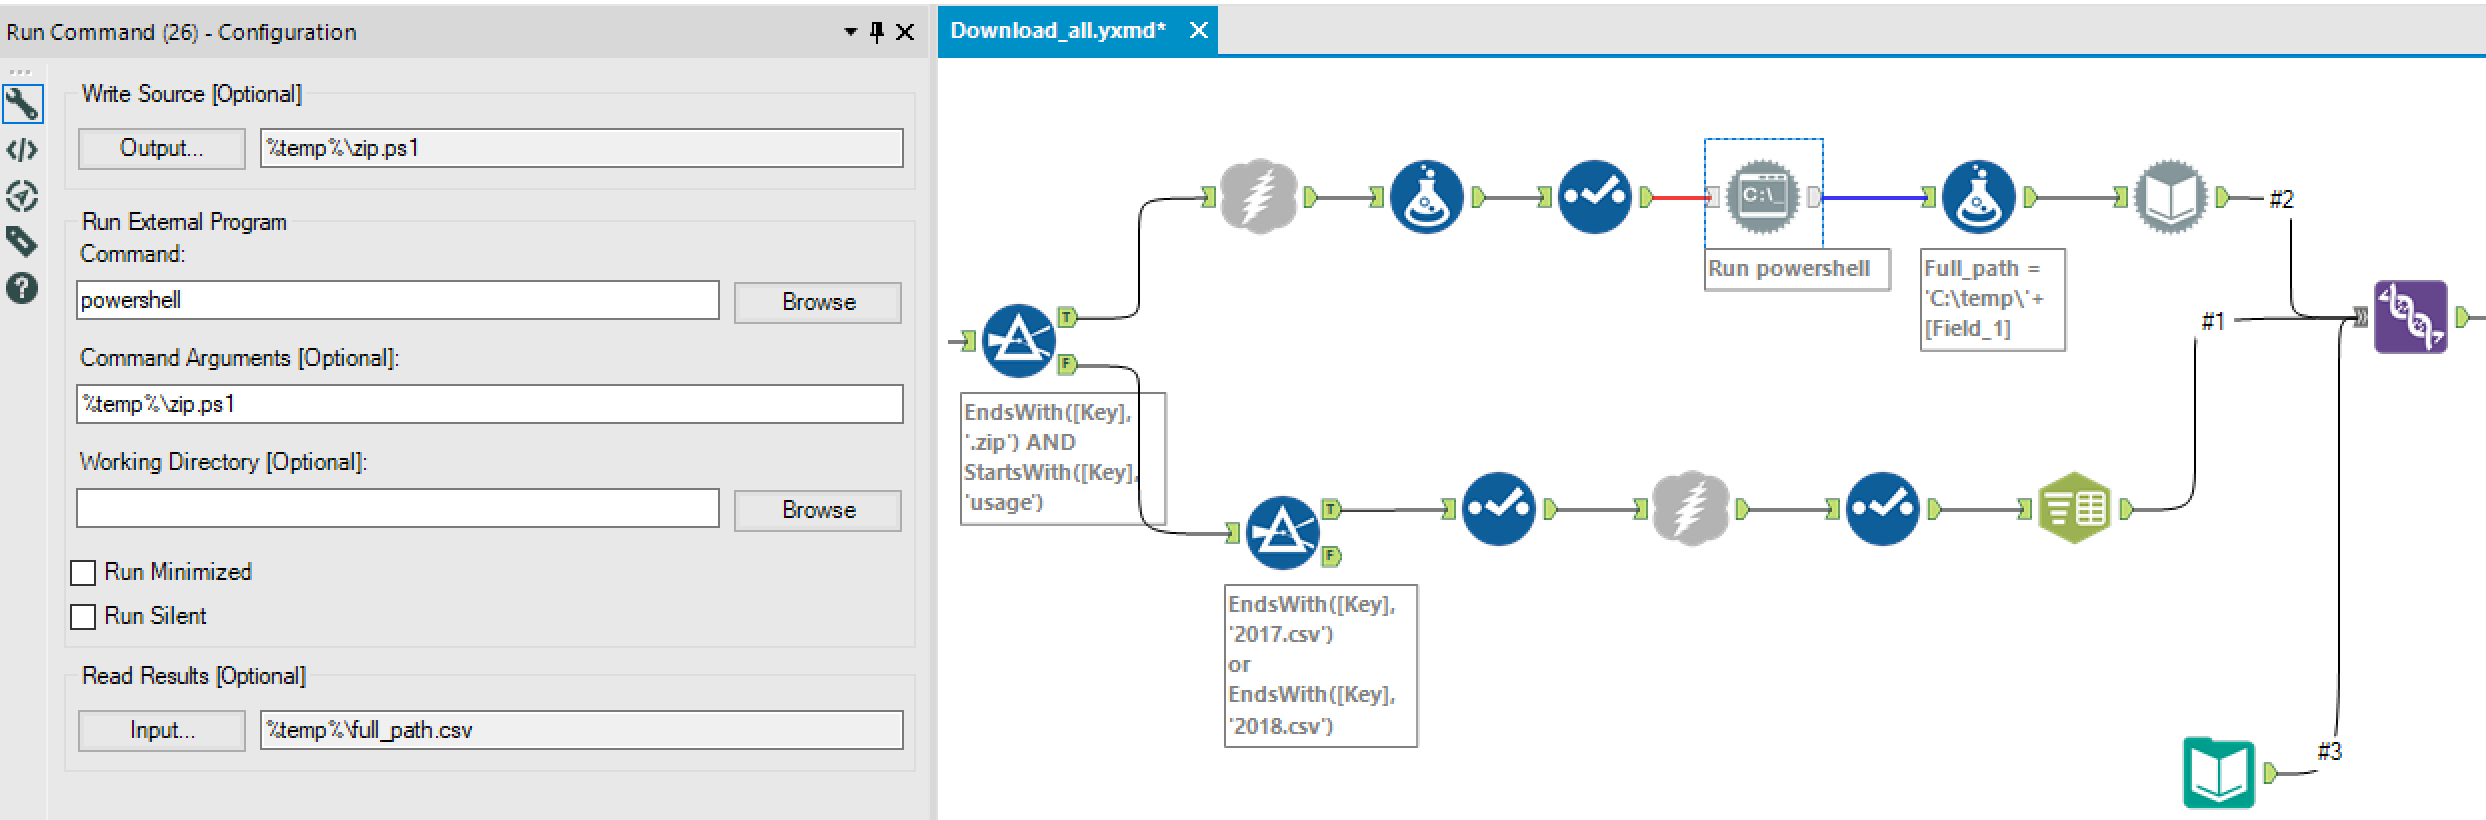 Configuration of a Run Command Tool in Alteryx to run a